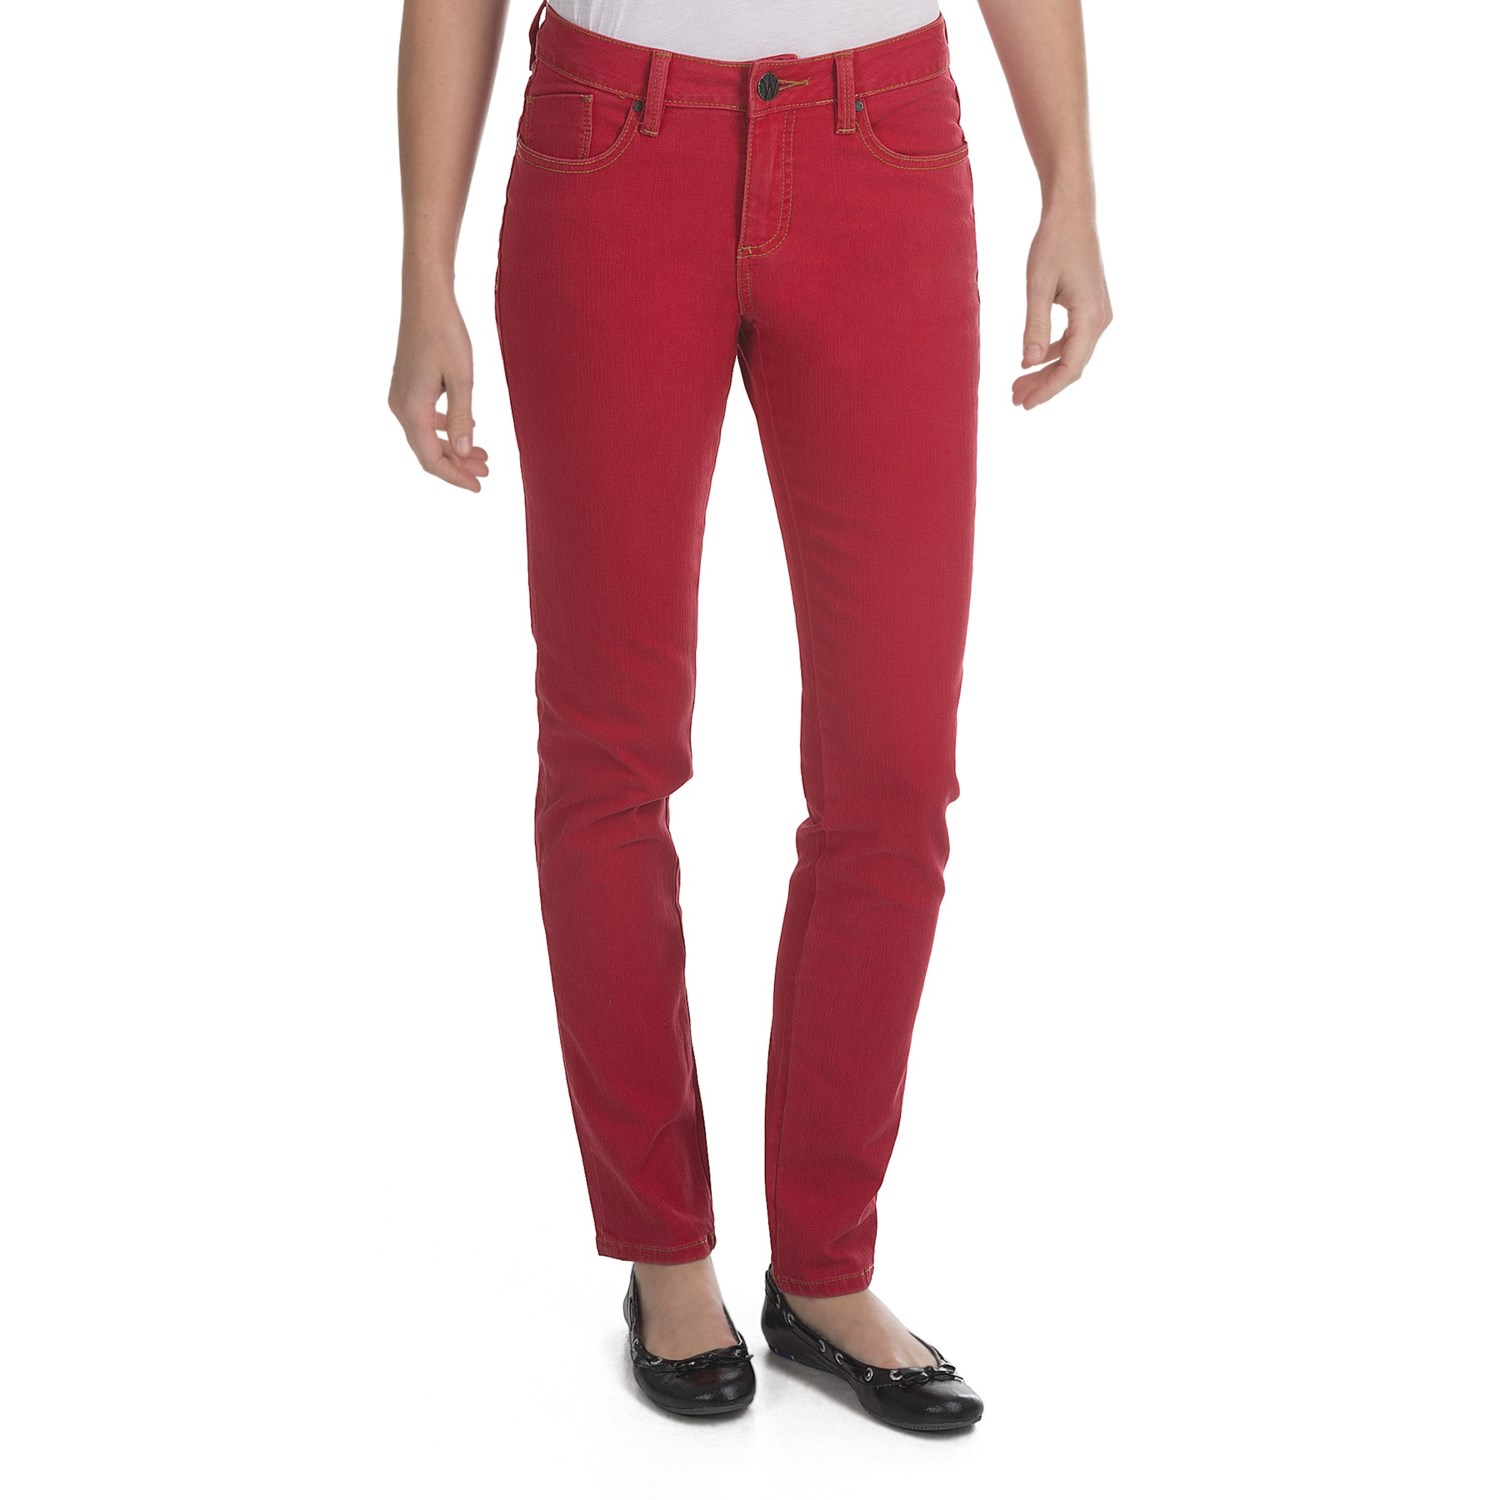 Discover coloured jeans at ASOS. Shop ASOS for coloured jean styles, such as skinny, slim fit and flare jeans.